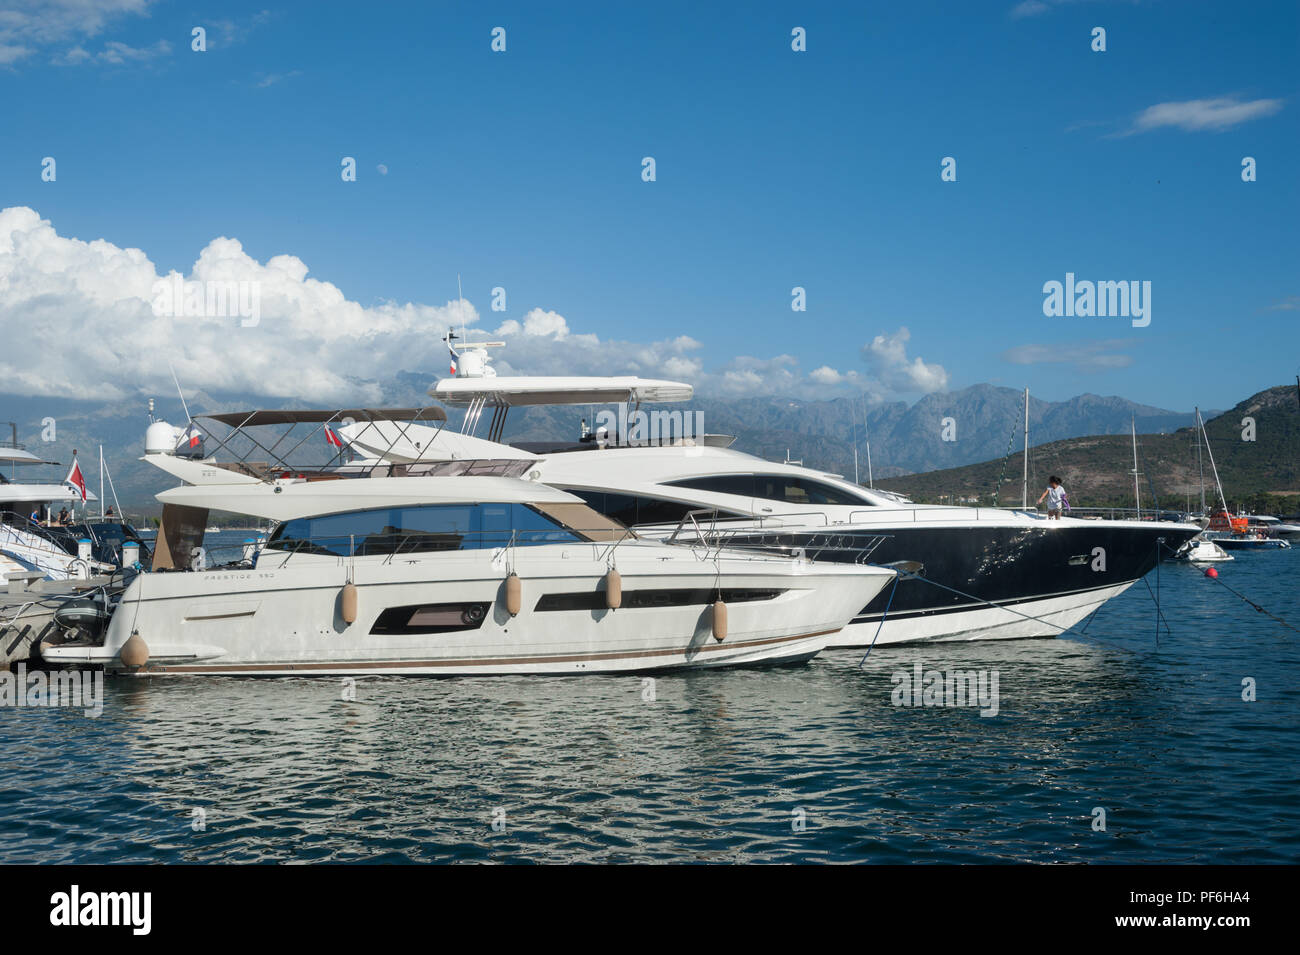 Deux Super Yachts Dans Le Port De Calvi La Balagne Corse France Europe Photo Stock Alamy